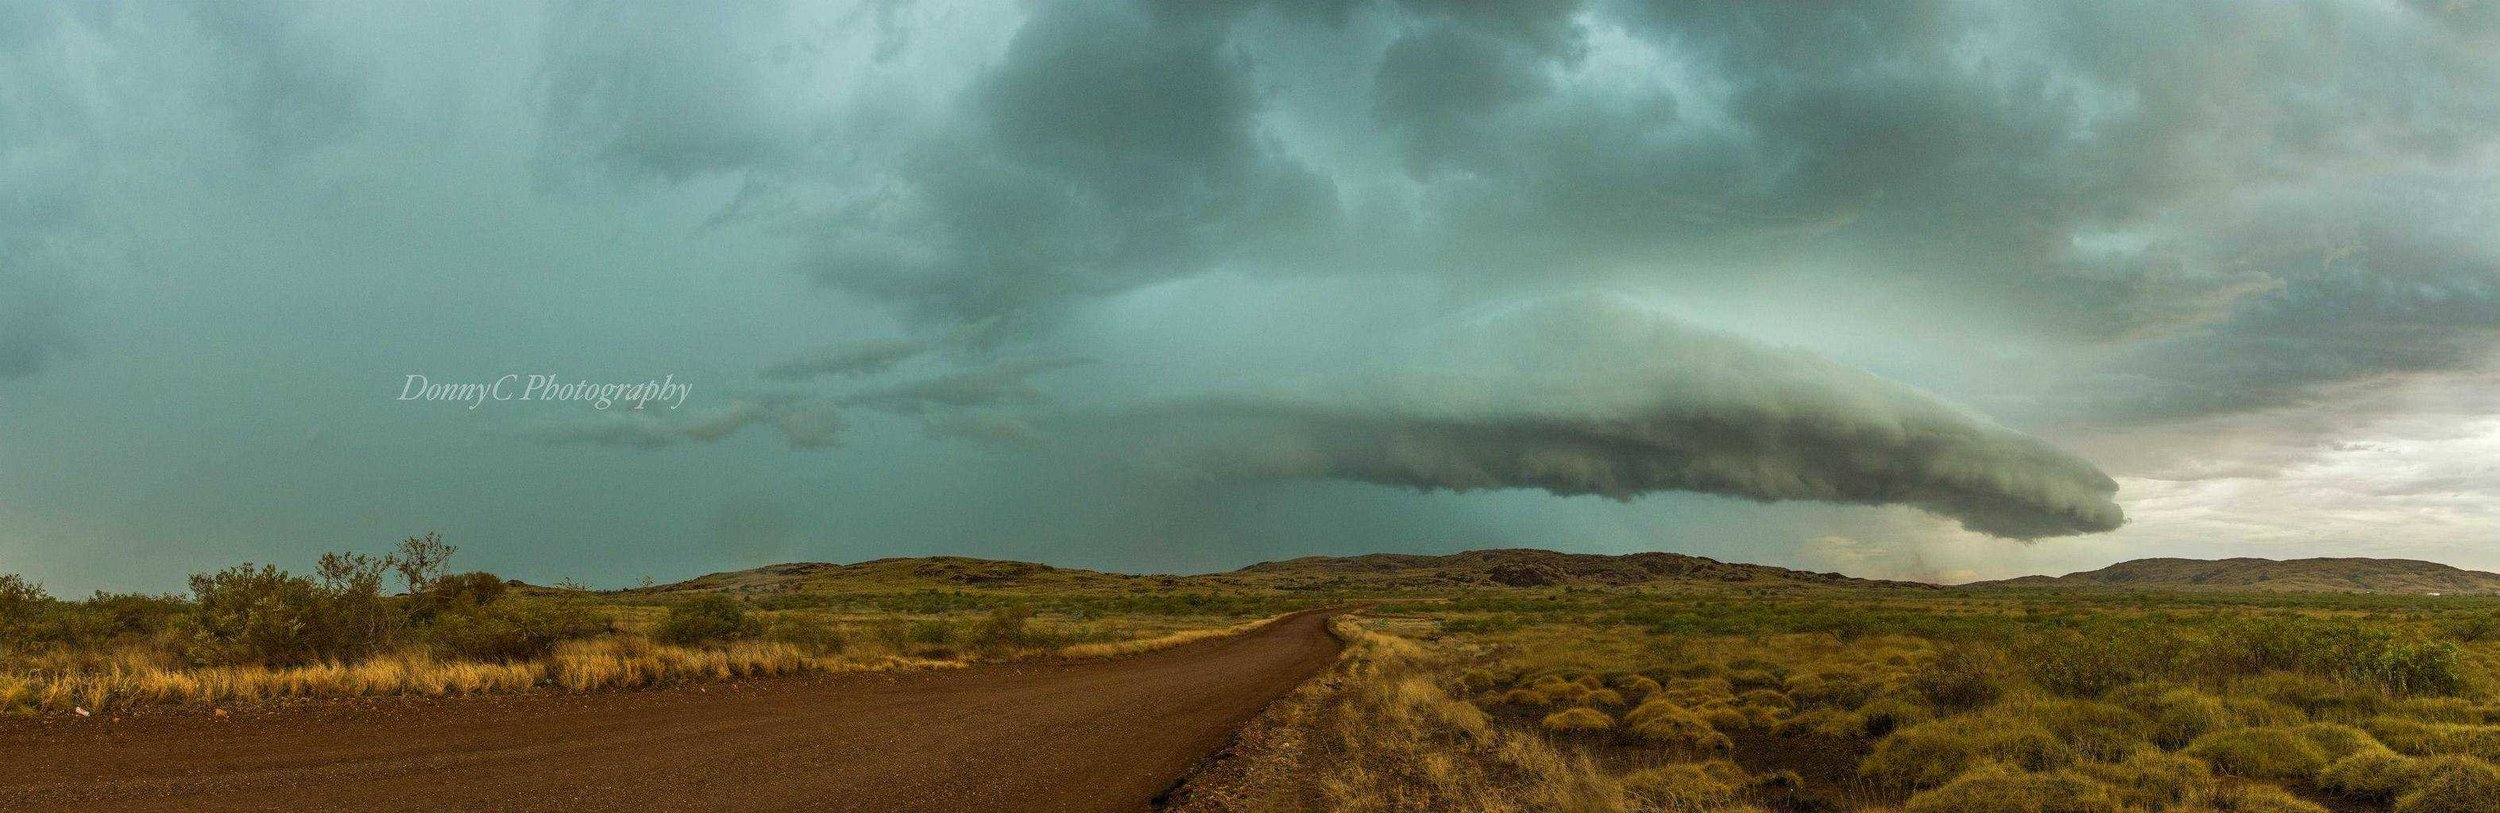 Storm season is pretty much over for us up here in Karratha in NW Australia, so going through some old pics.... I loved this one from a while back..Almost looks like a Blue Whale coming out of the Clouds..